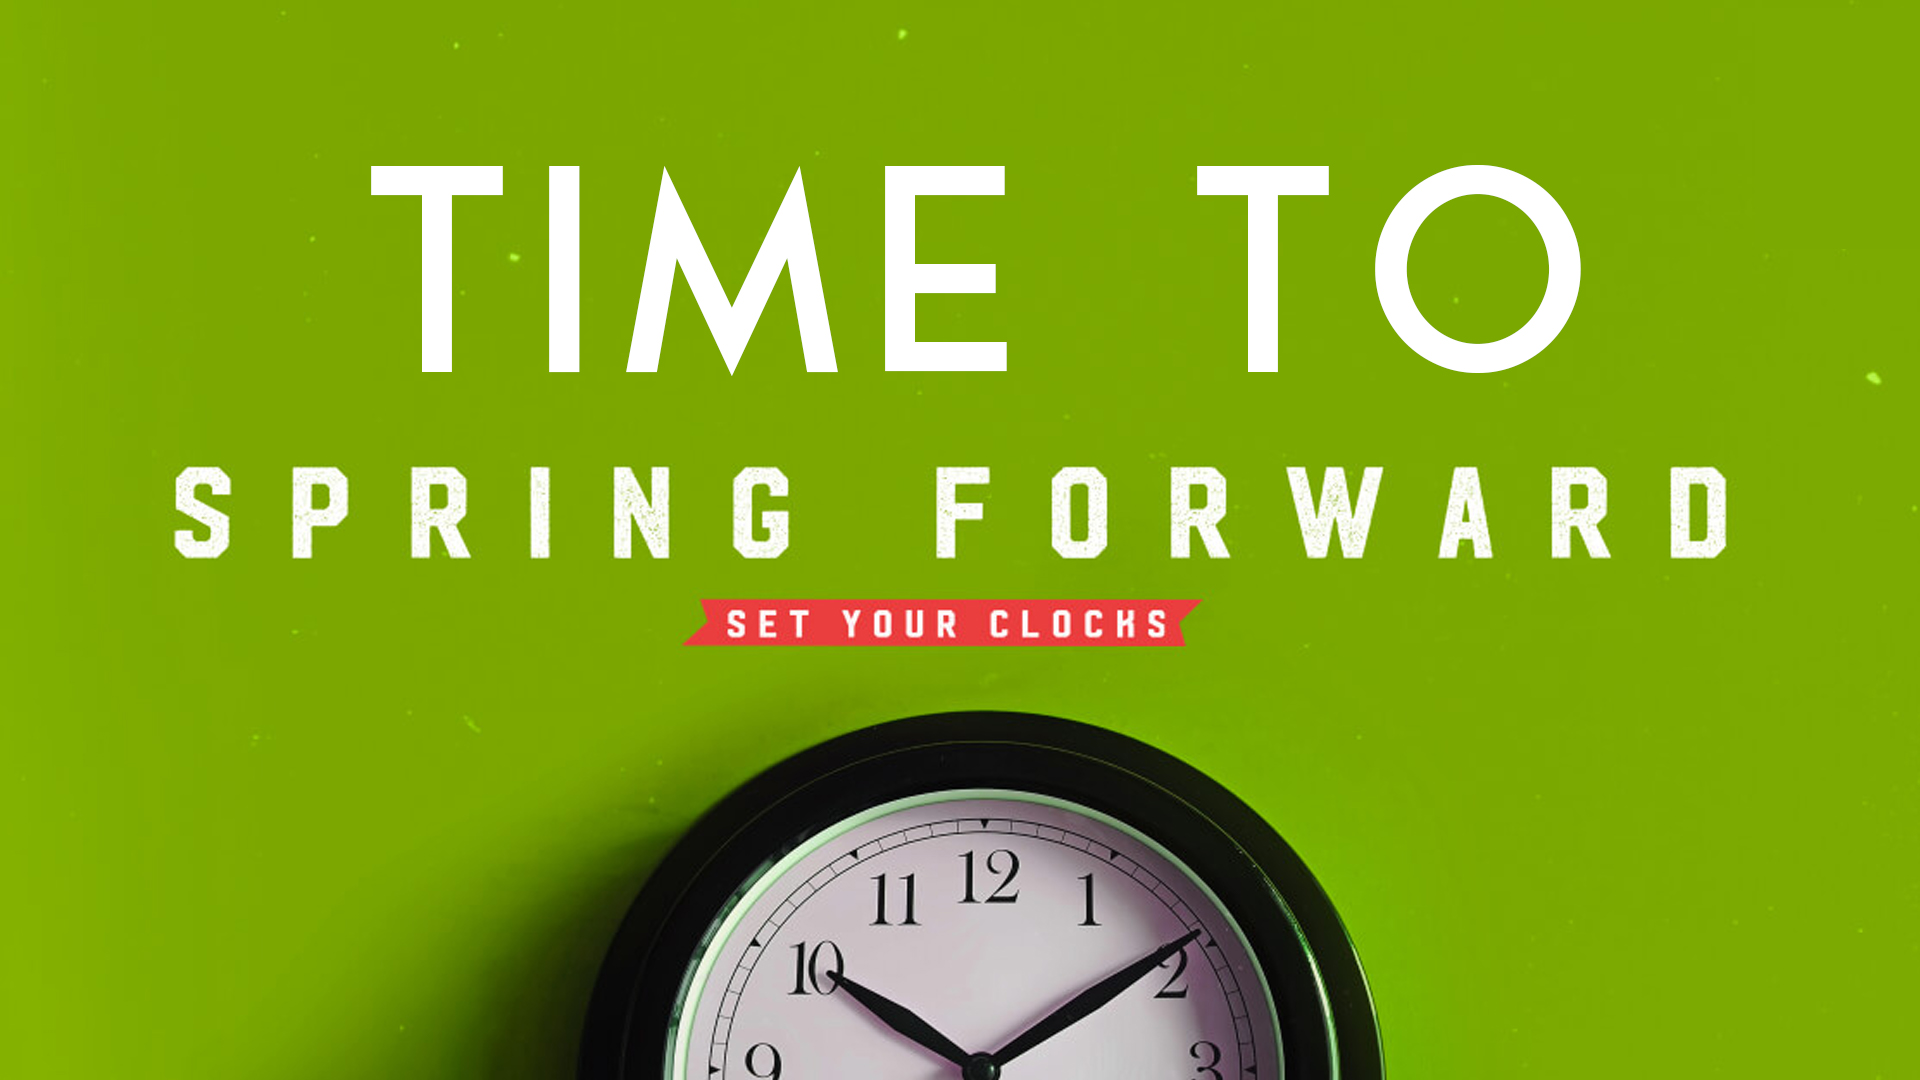 Spring Forward 2019 Version 2.jpg